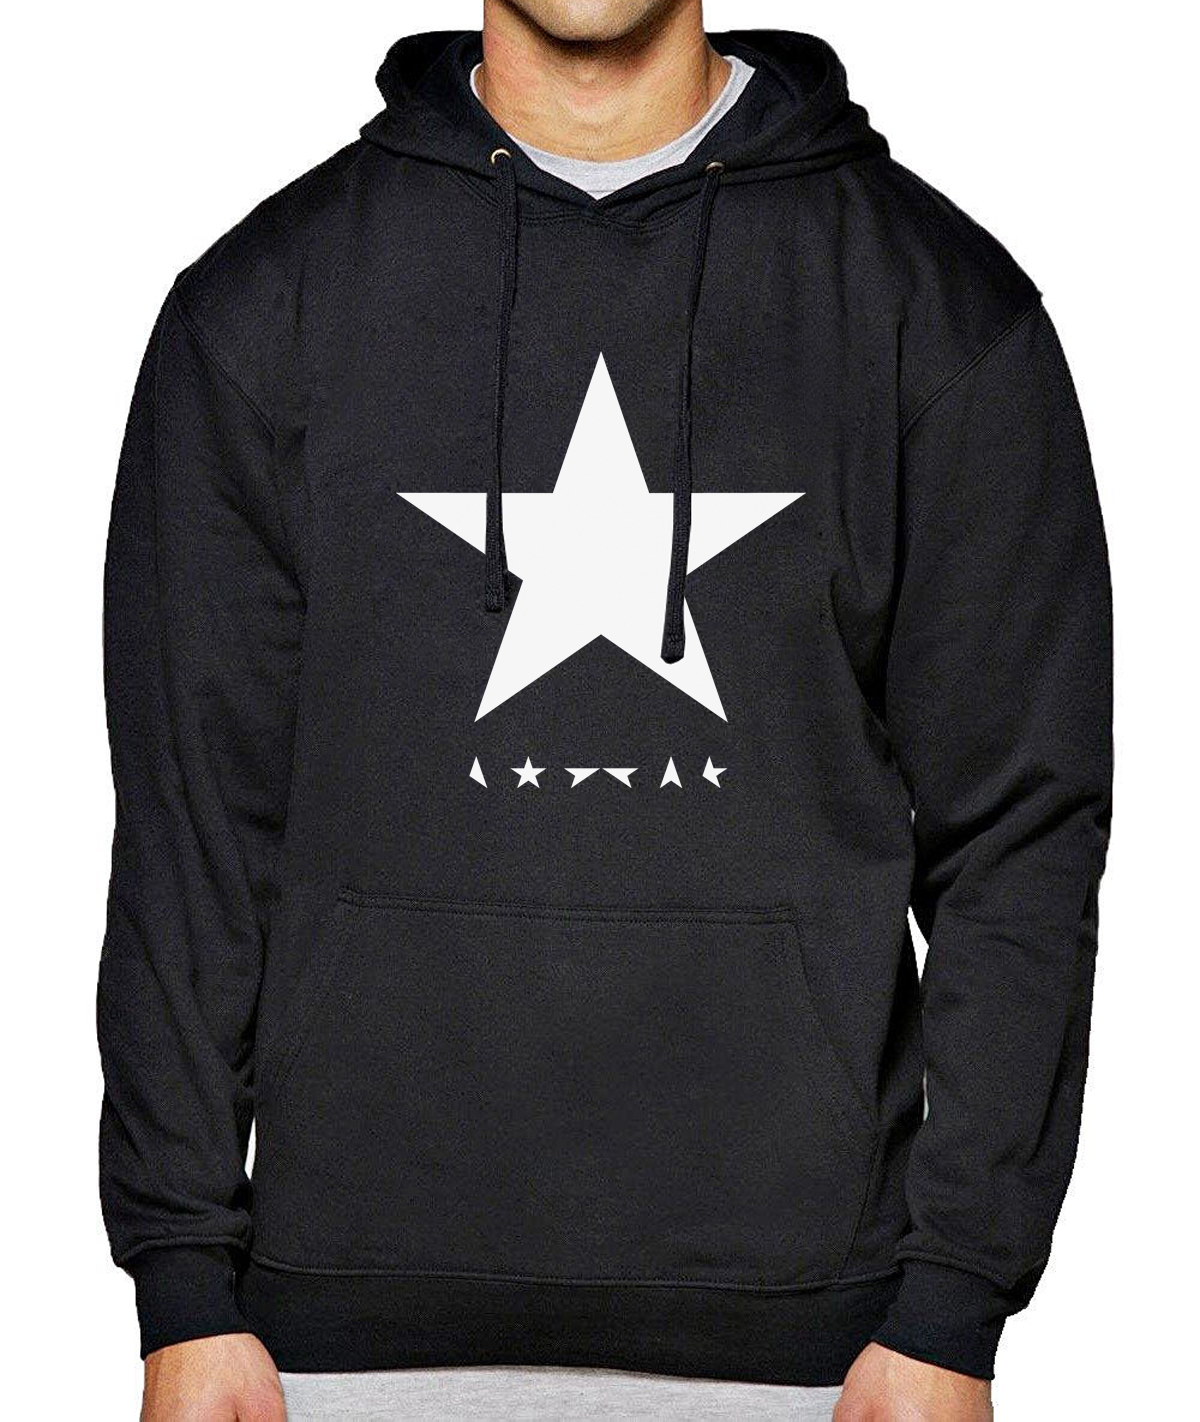 David Bowie Heroes Star Logo Printed Hoody For Men 2019  Spring Fleece Sweatshirt New Hot Winter Mens Hoodies Streetwear Casual